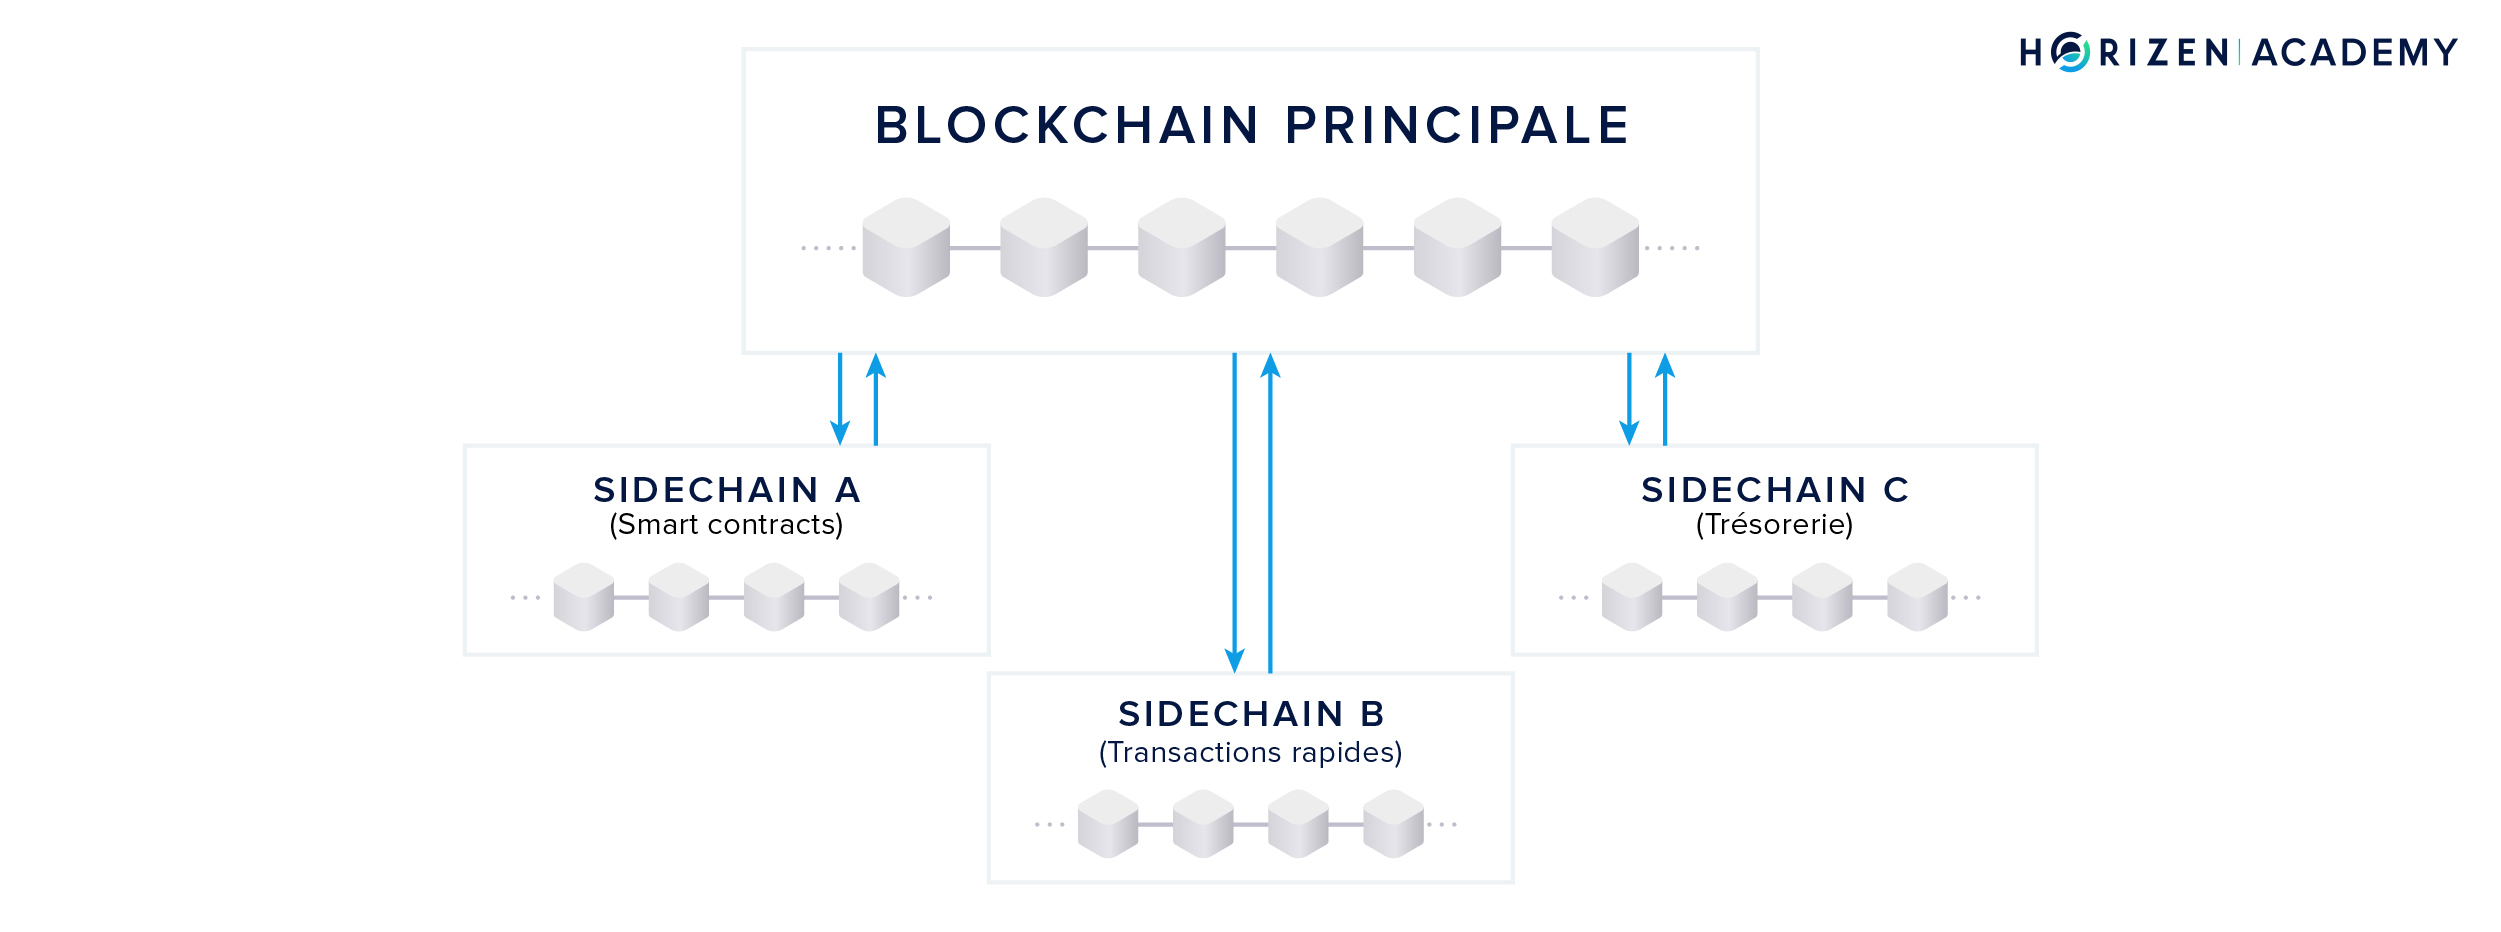 Sidechains in FR